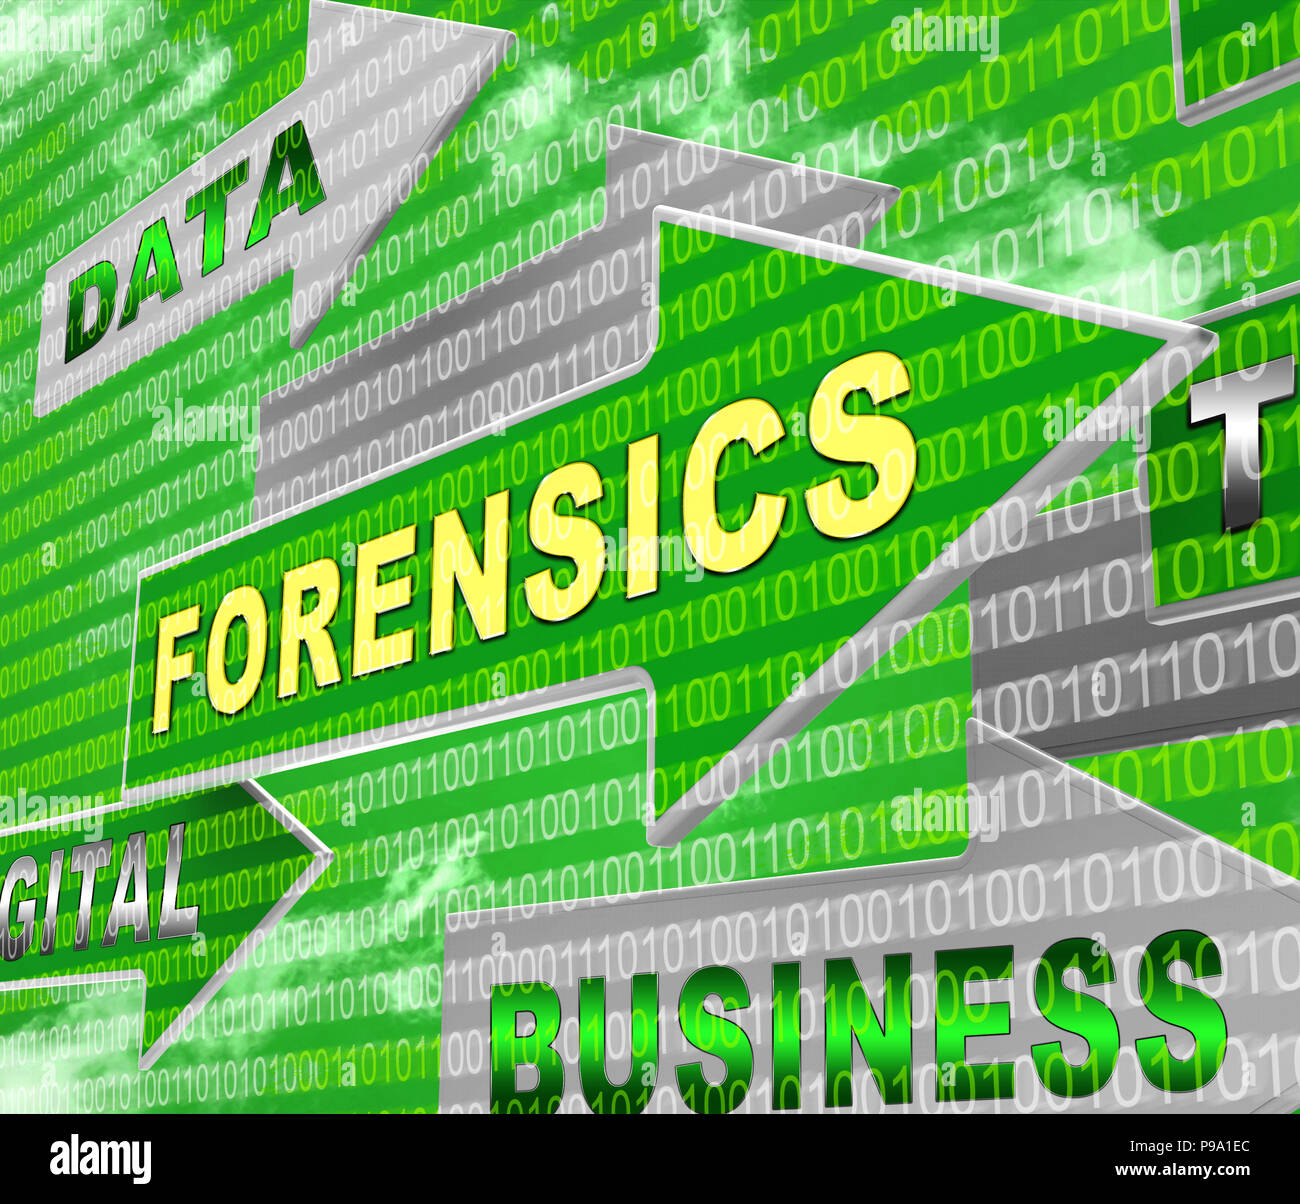 Cyber Forensics Computer Crime Analysis 3d Rendering Shows